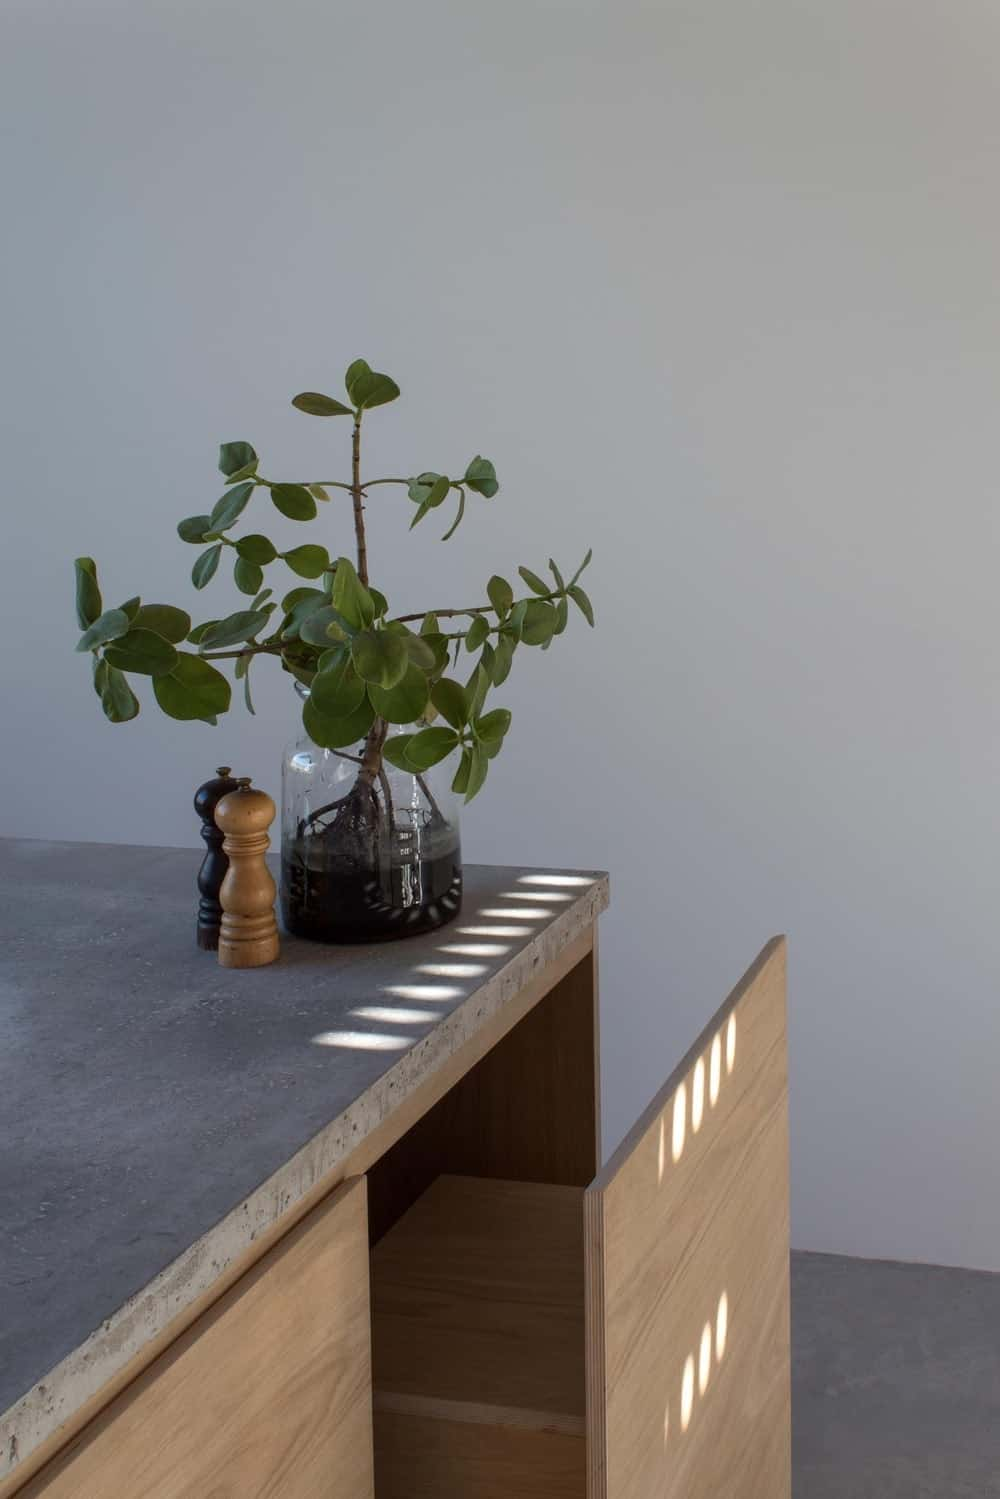 This is a close look at the kitchen island showcasing the wooden chairs that are hidden within its cabinetry.